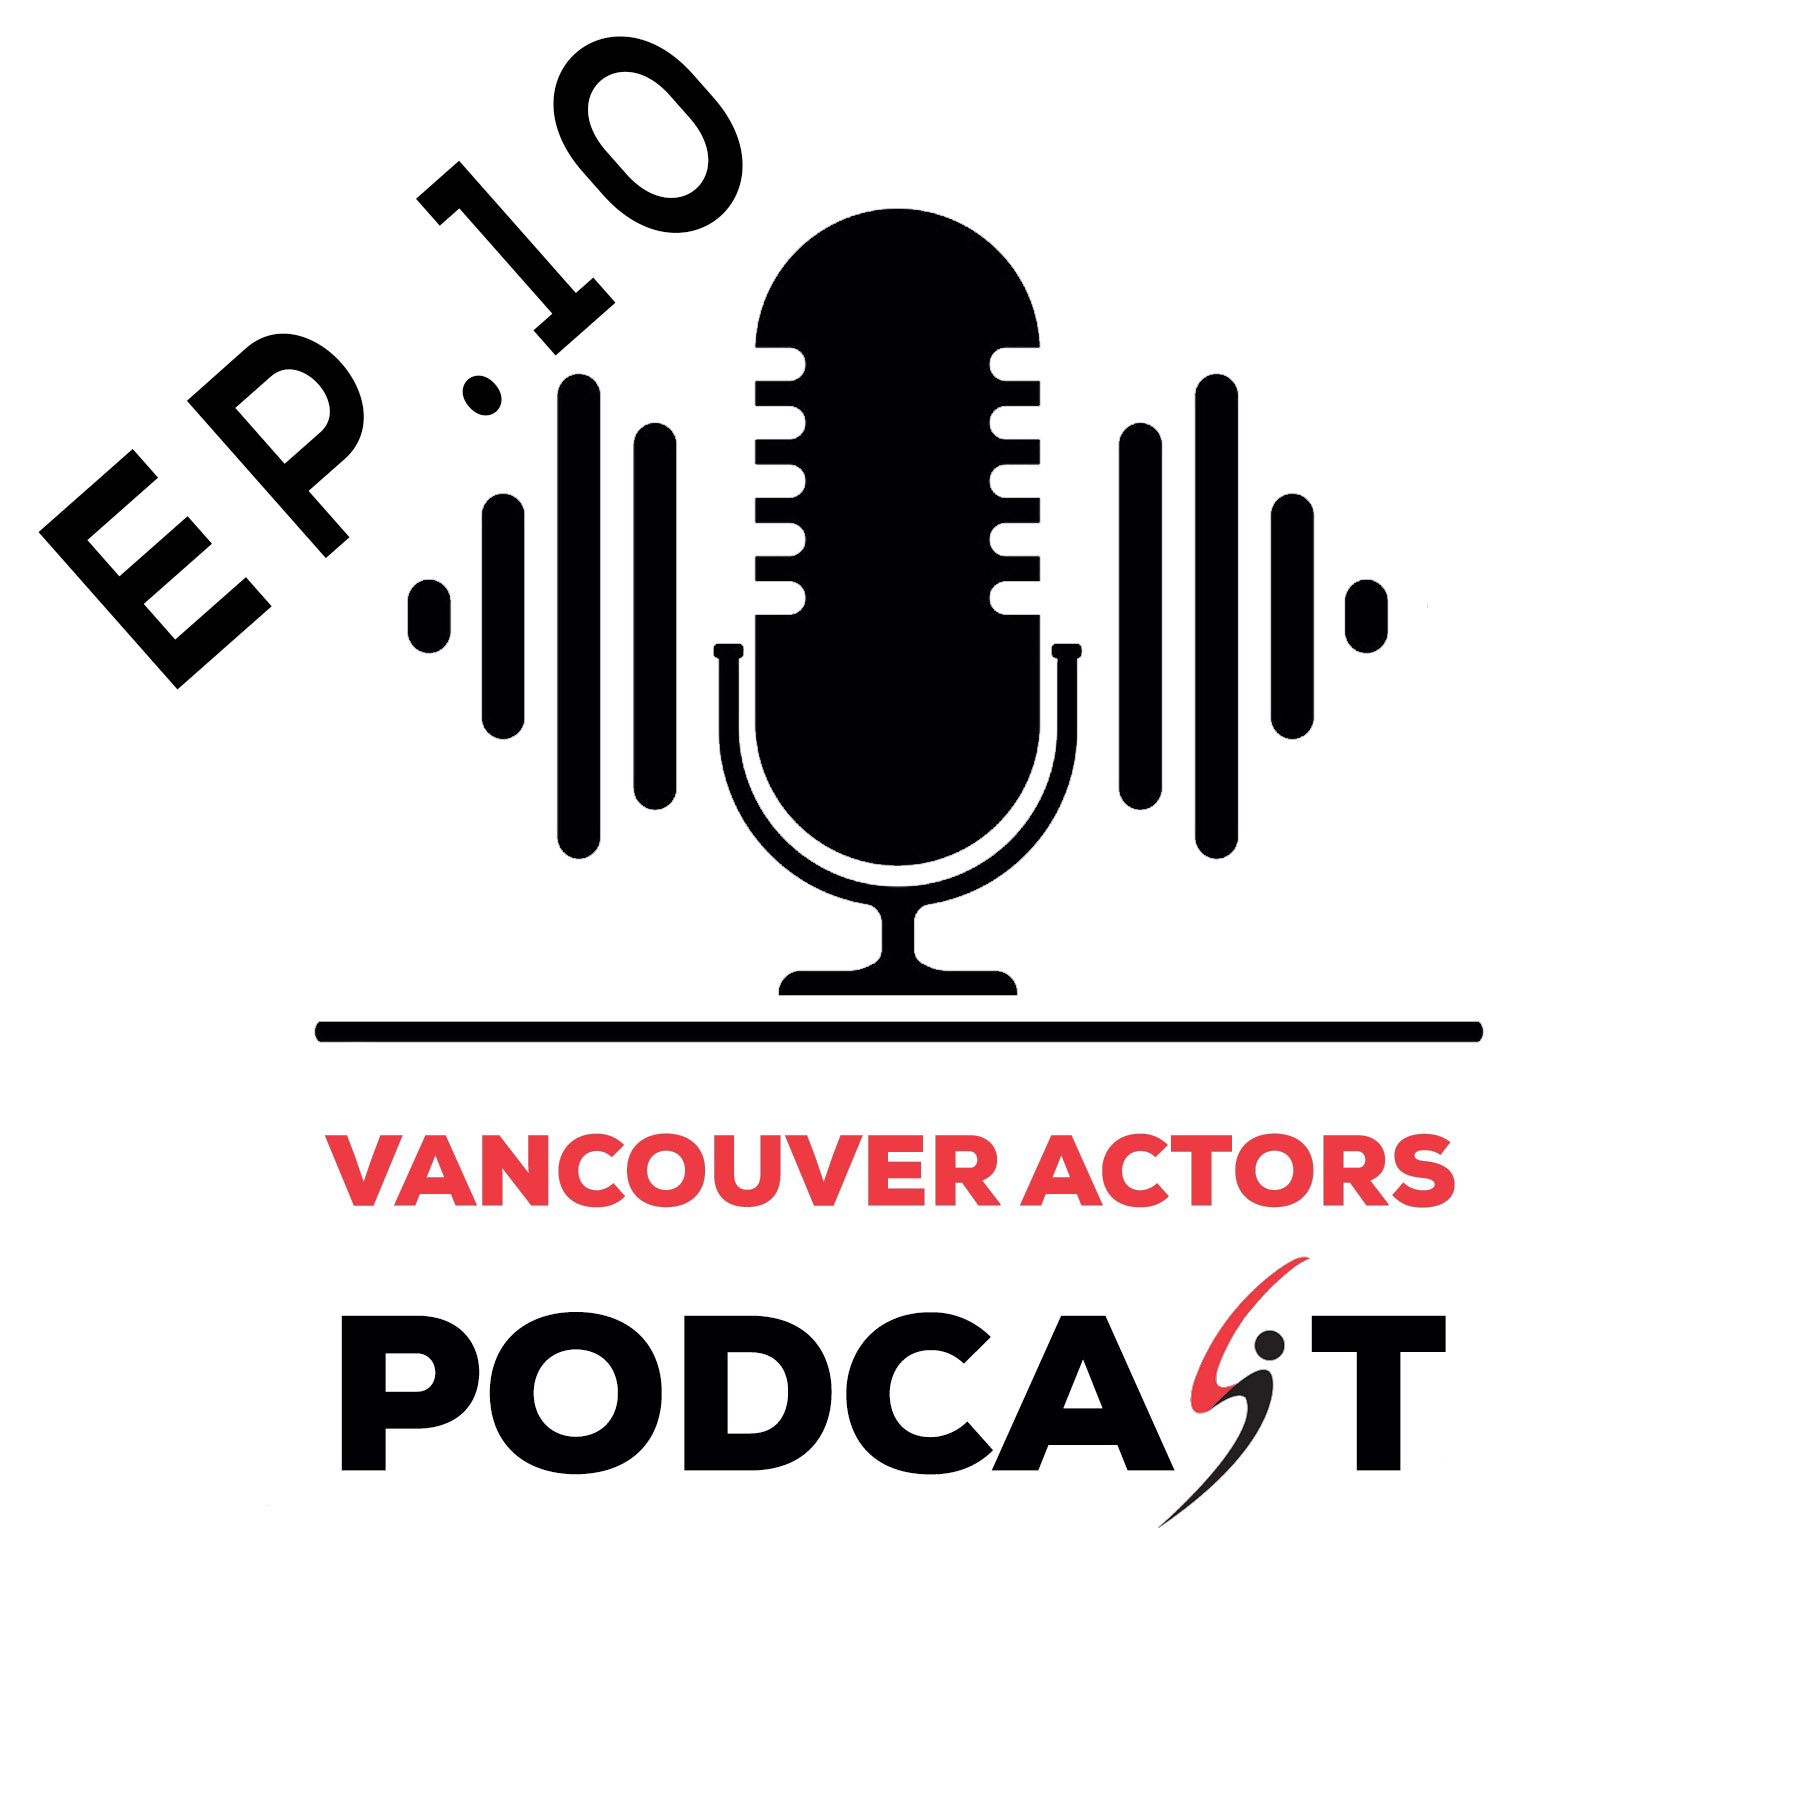 Vancouver Actors Podcast Michael Coleman Ep. 10